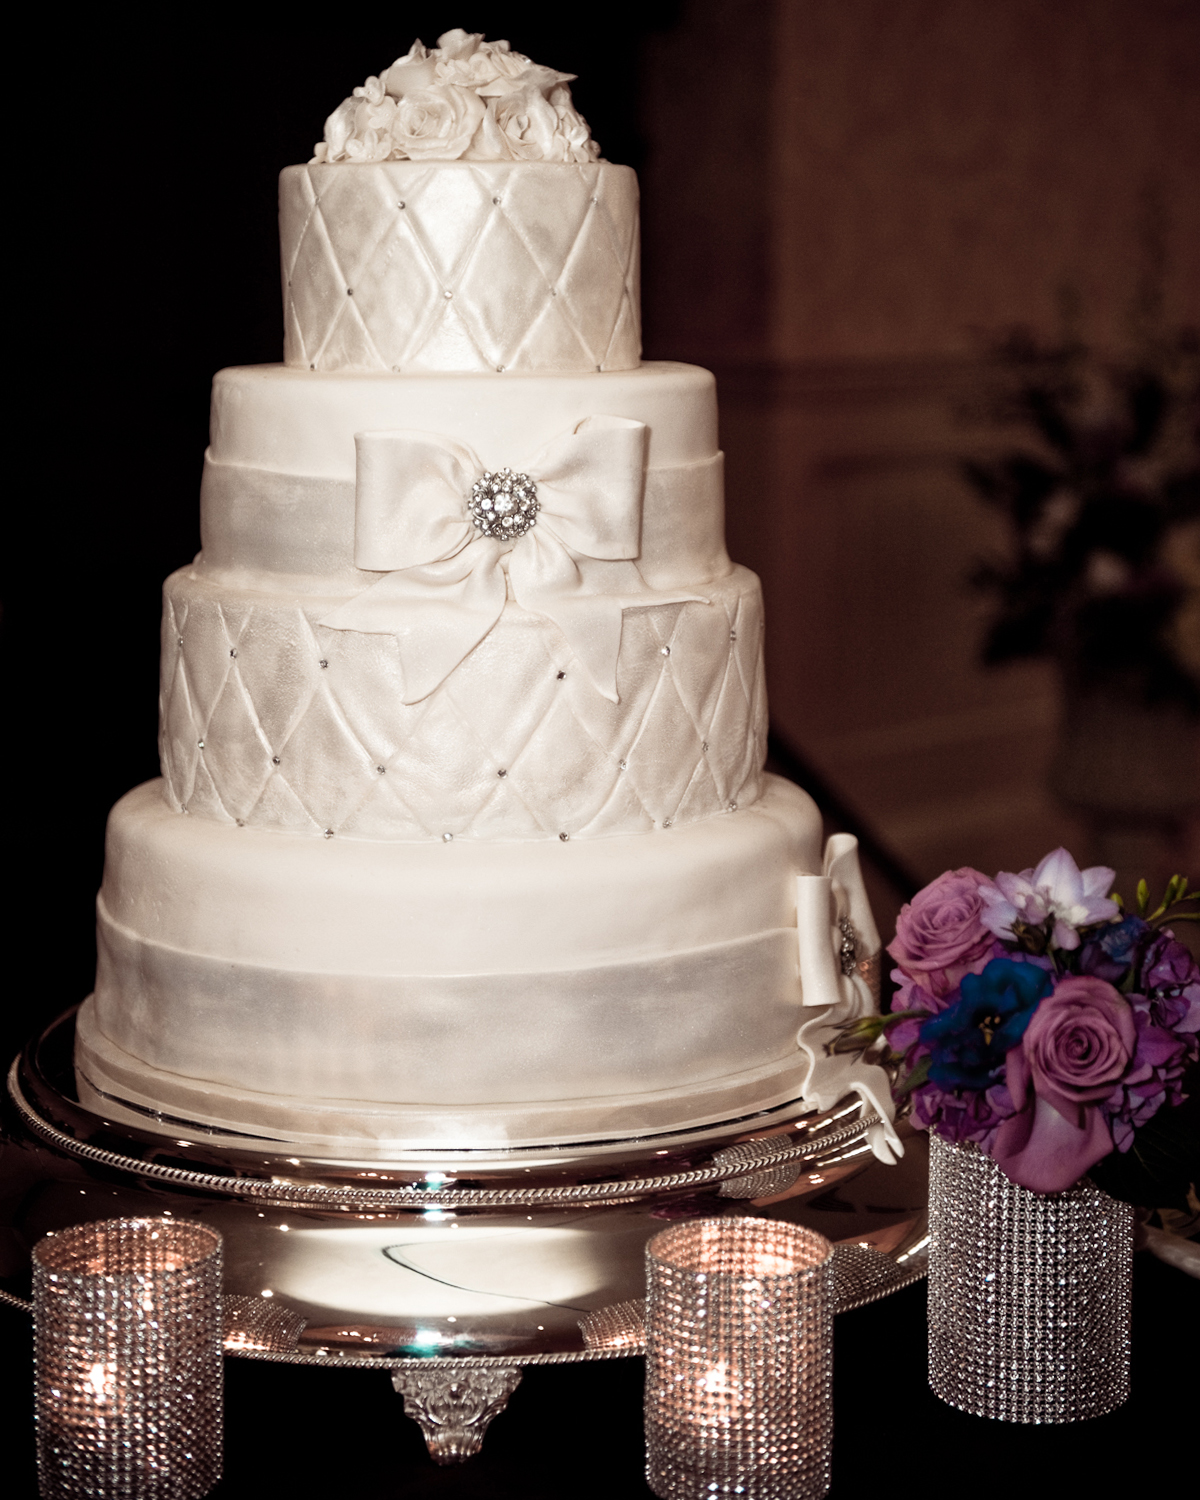 Diamonds & roses wedding cake